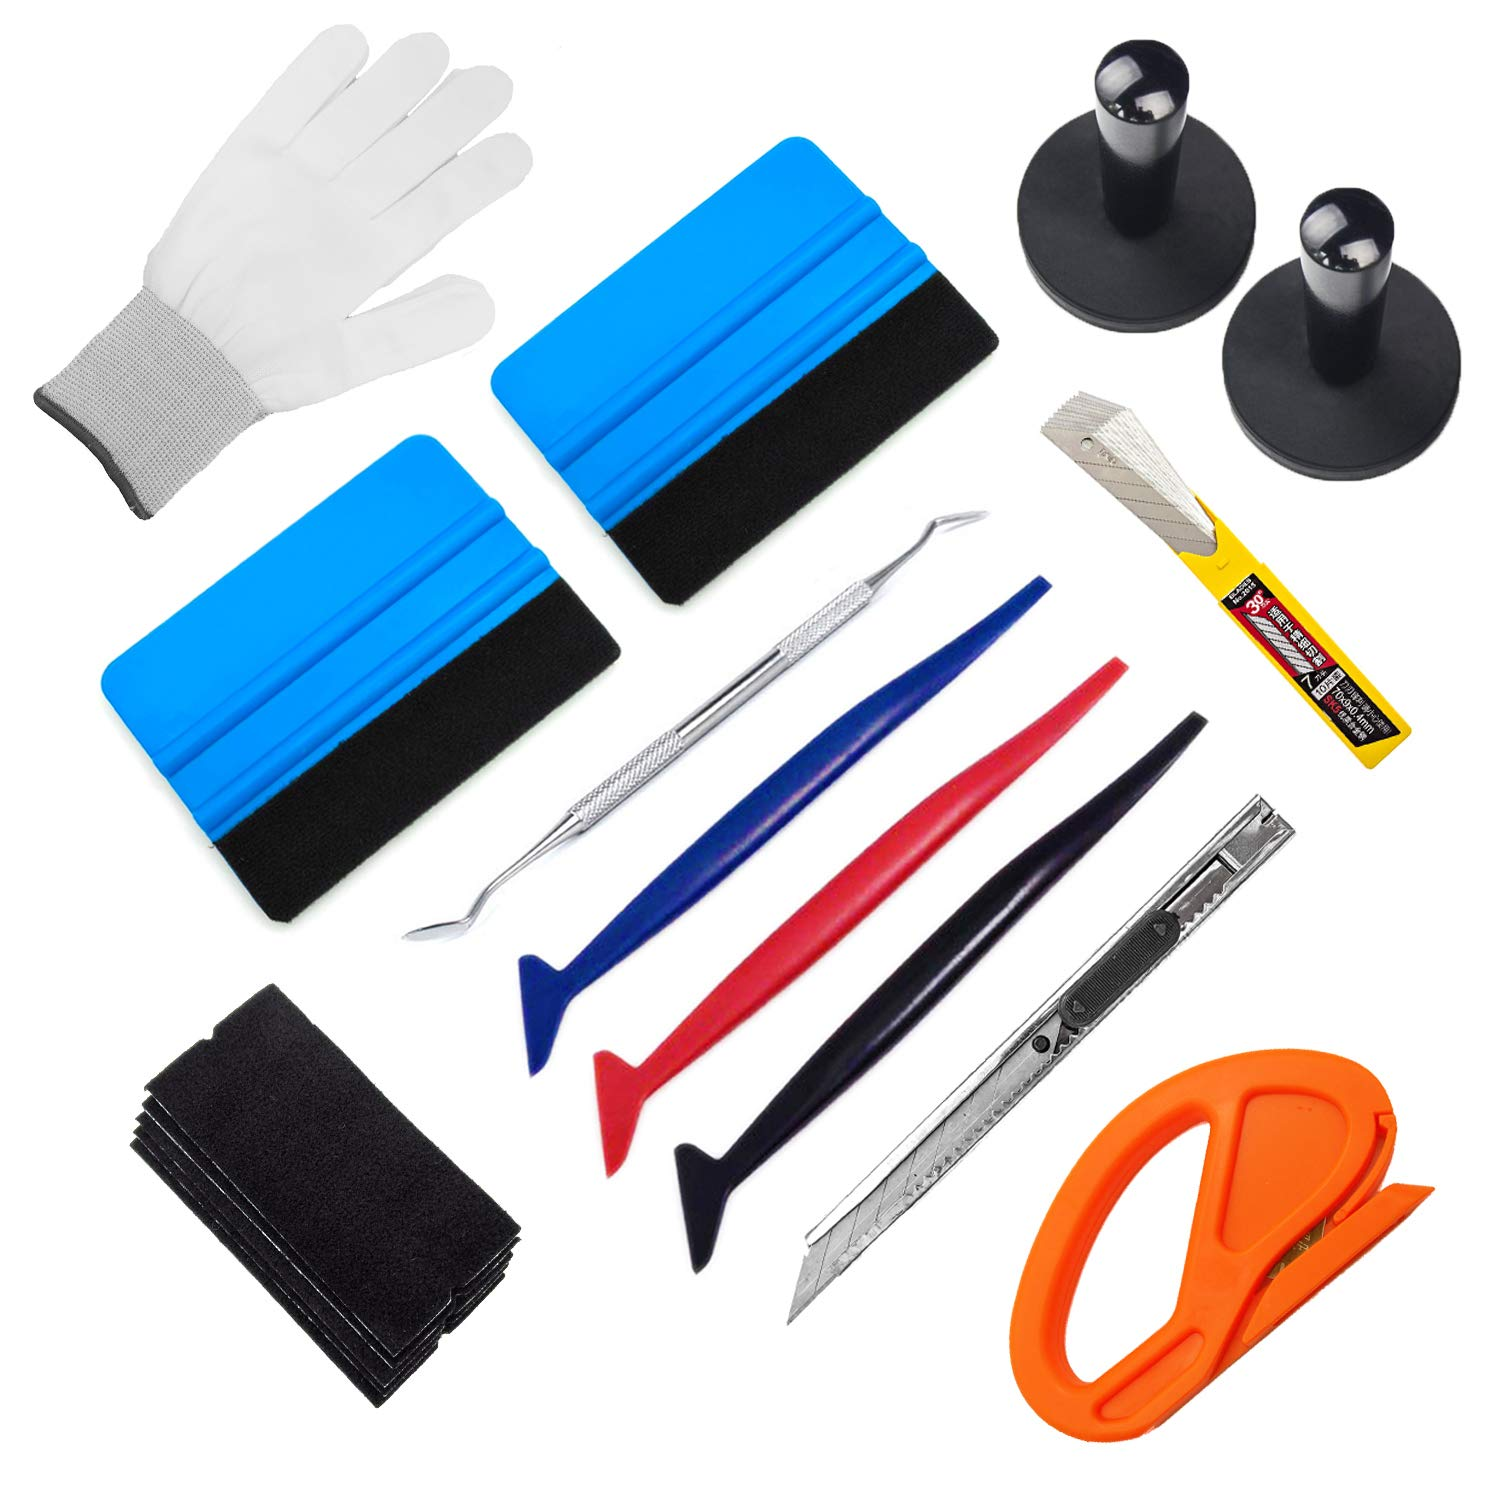 CARTINTS GUGUGI Auto Window Tint Film Tool Kit Vinyl Wrap Application Kit Include Felt Squeegee, Fabric Felts, Micro Squeegee, Vinyl Magnet Holders, Working Gloves, Cutter Knife, Utility Knife Blades